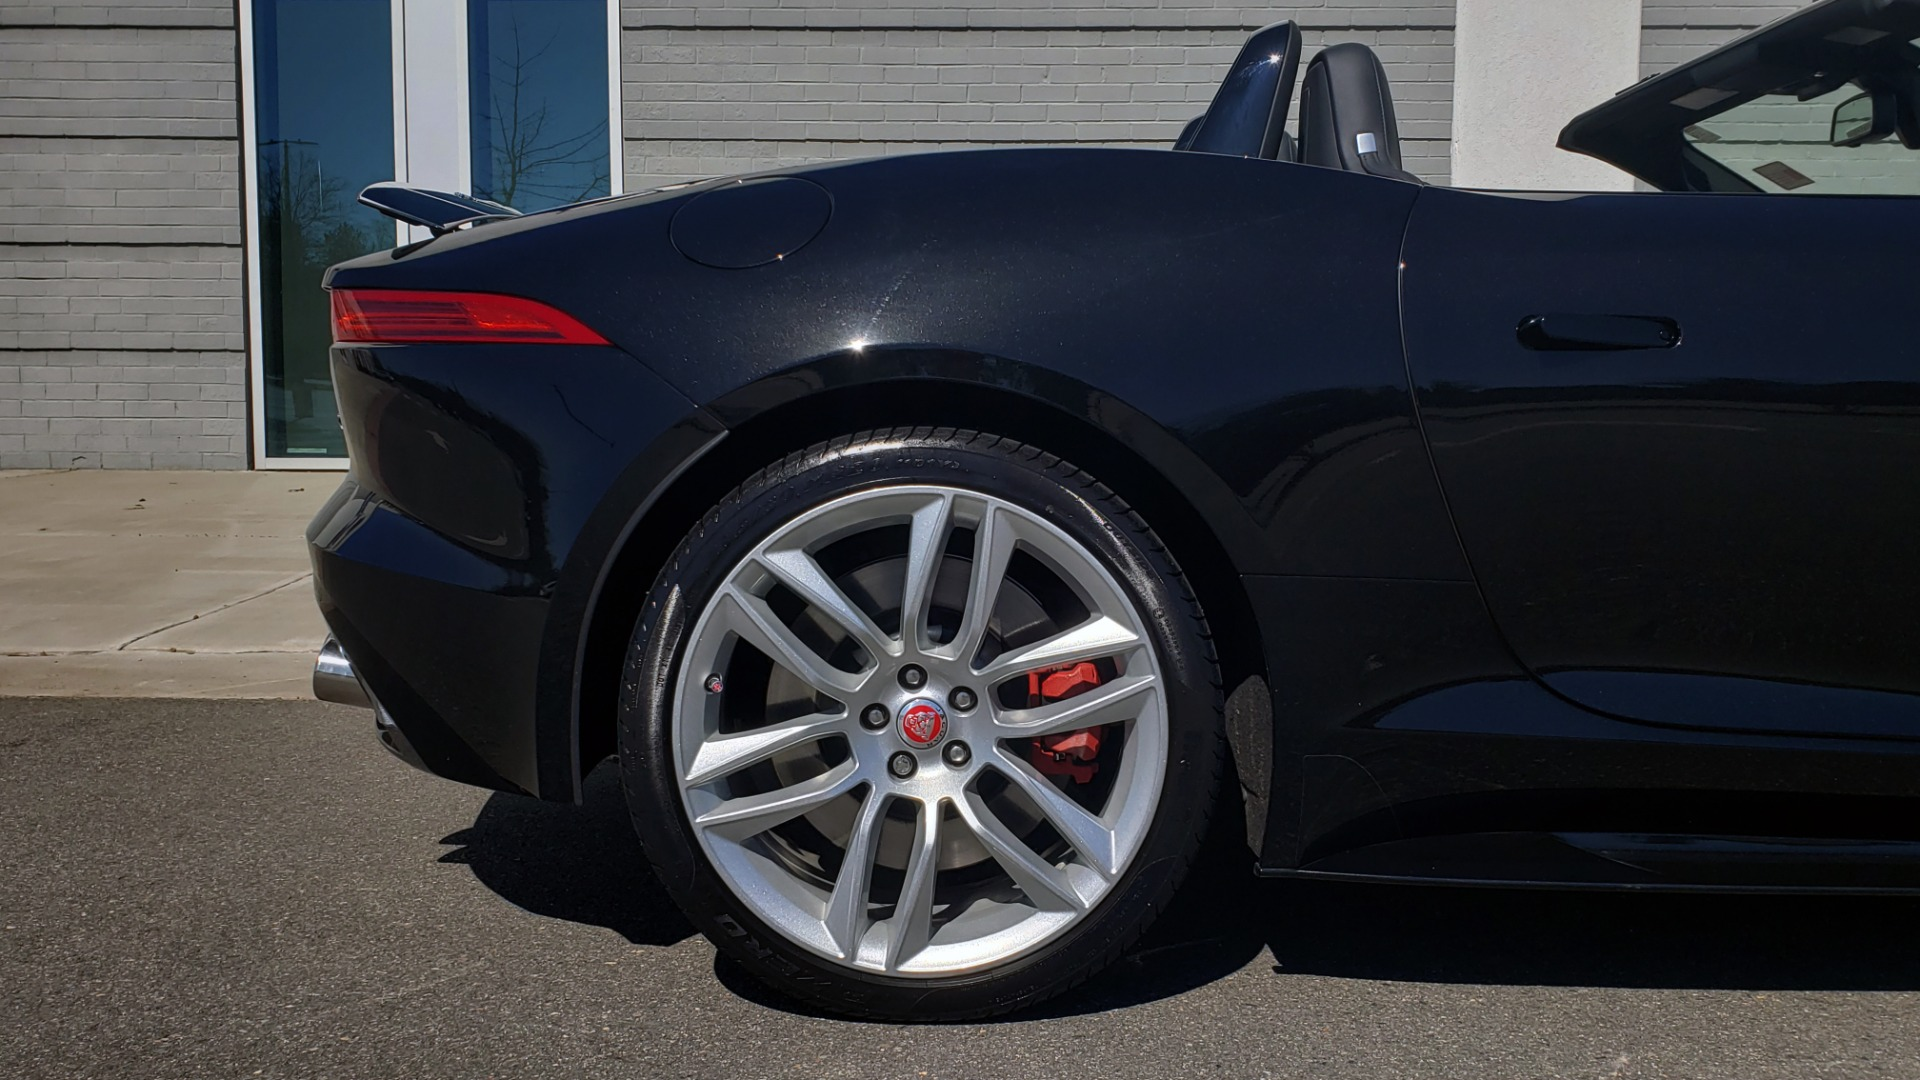 Used 2016 Jaguar F-TYPE R CONVERTIBLE / SC 5.0L 550HP / VISION PACK 3 / BSM / REARVIEW for sale $63,000 at Formula Imports in Charlotte NC 28227 46